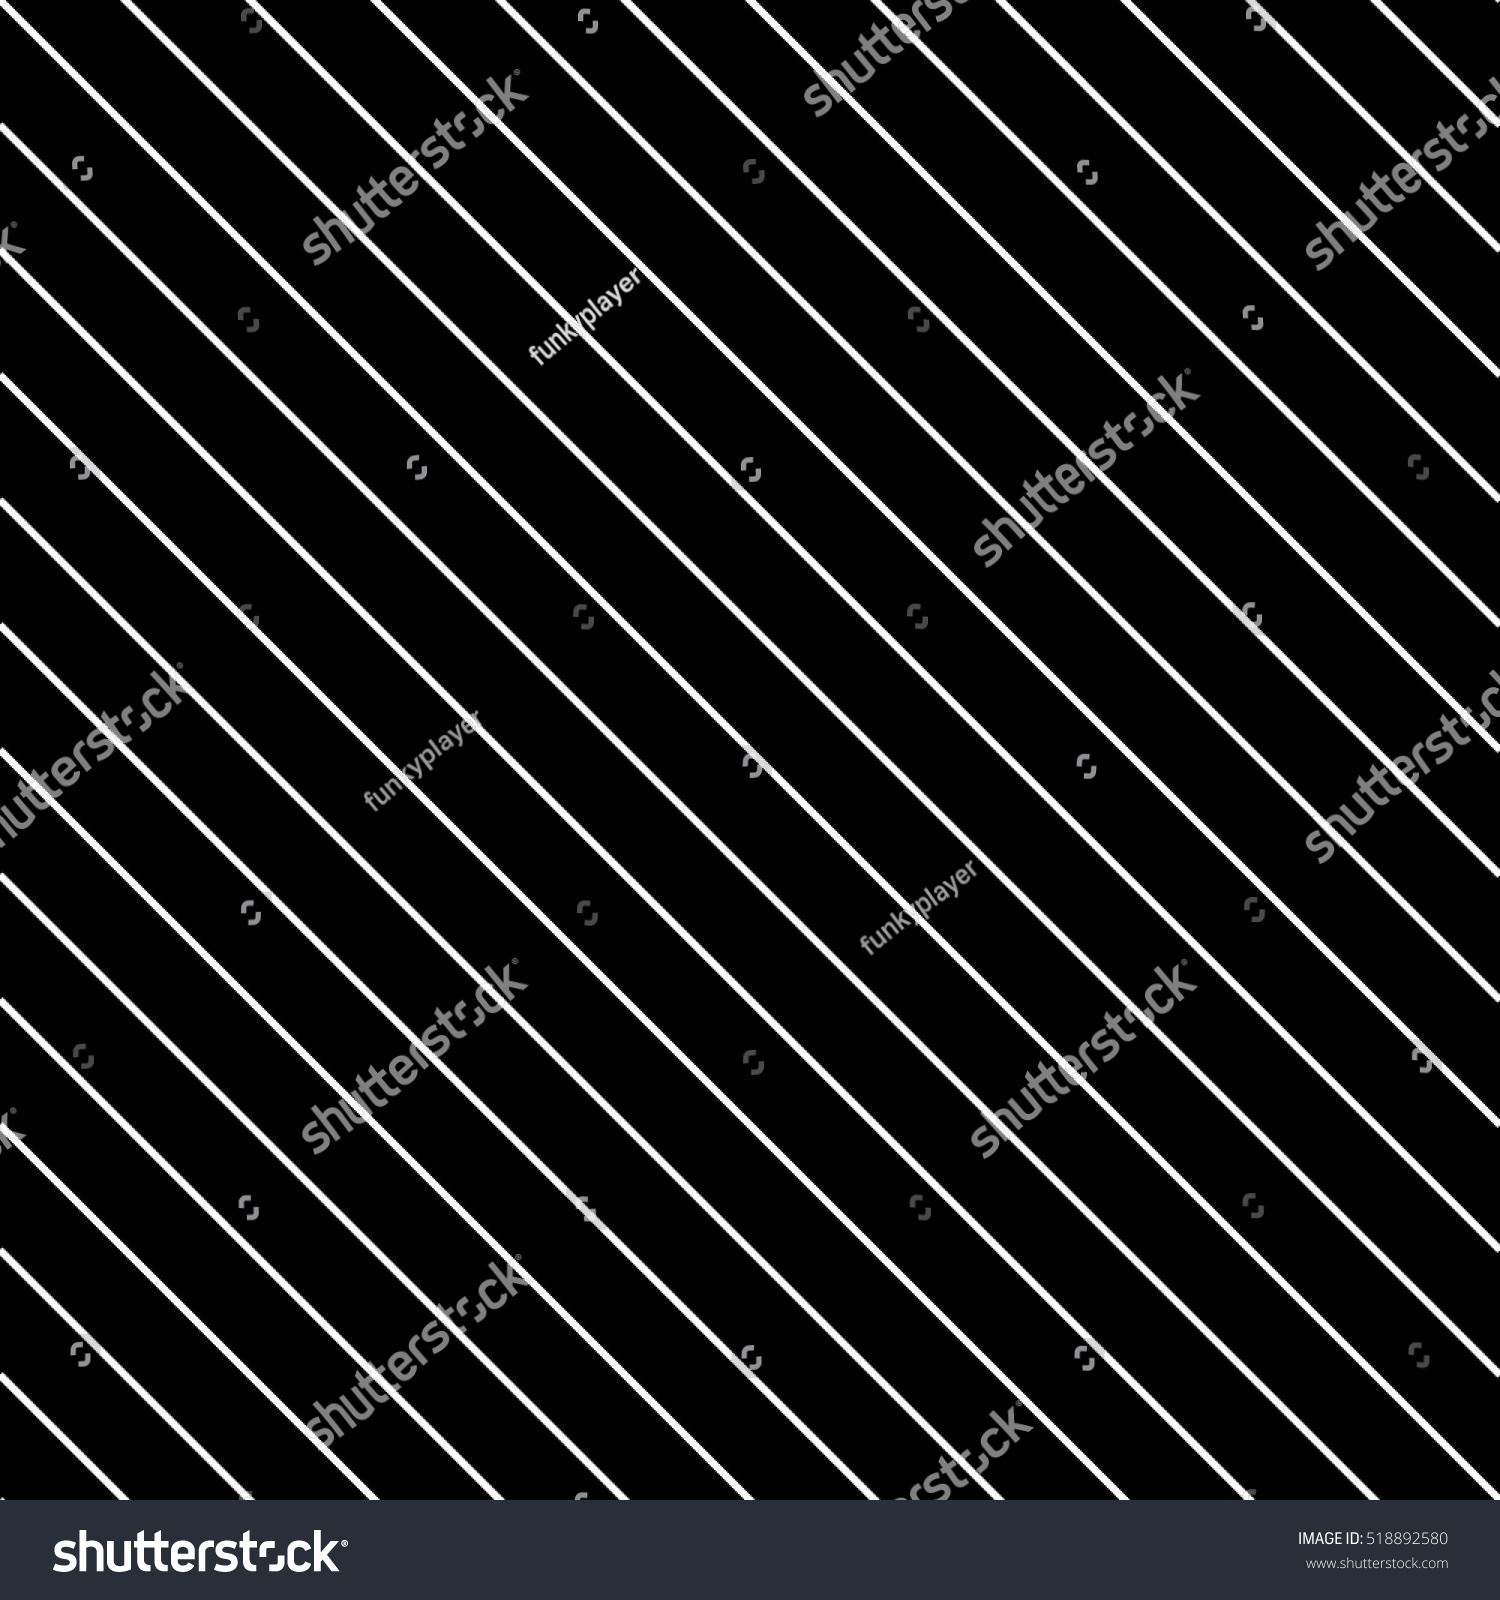 And black diagonal stripes background seamless background or wallpaper - Seamless Pattern With Symmetric Geometric Ornament White Diagonal Lines On Black Background Striped Abstract